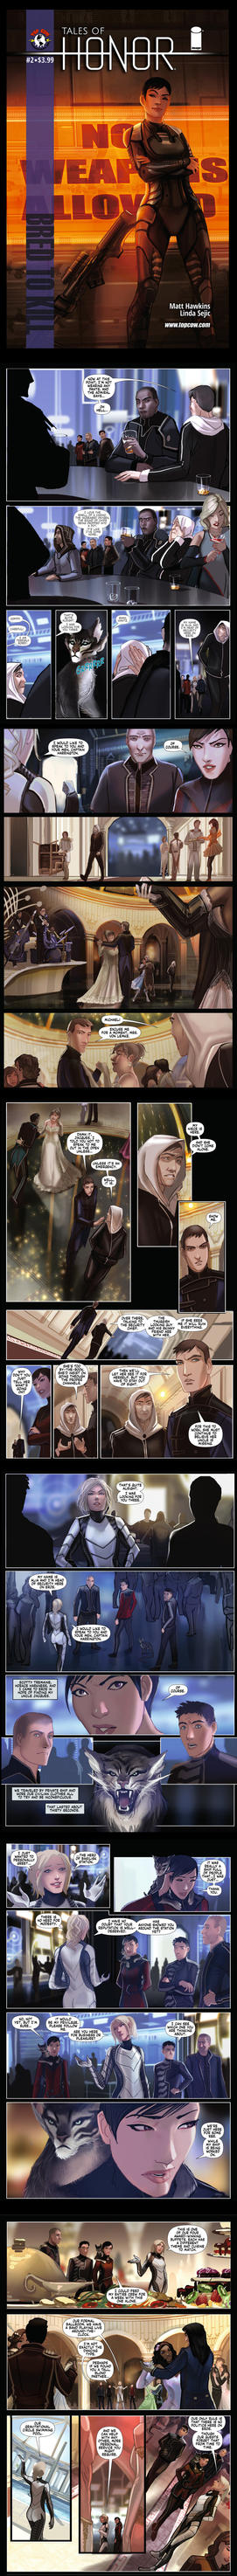 Tales of honor vol 2 issue 2 previews by calisto-lynn